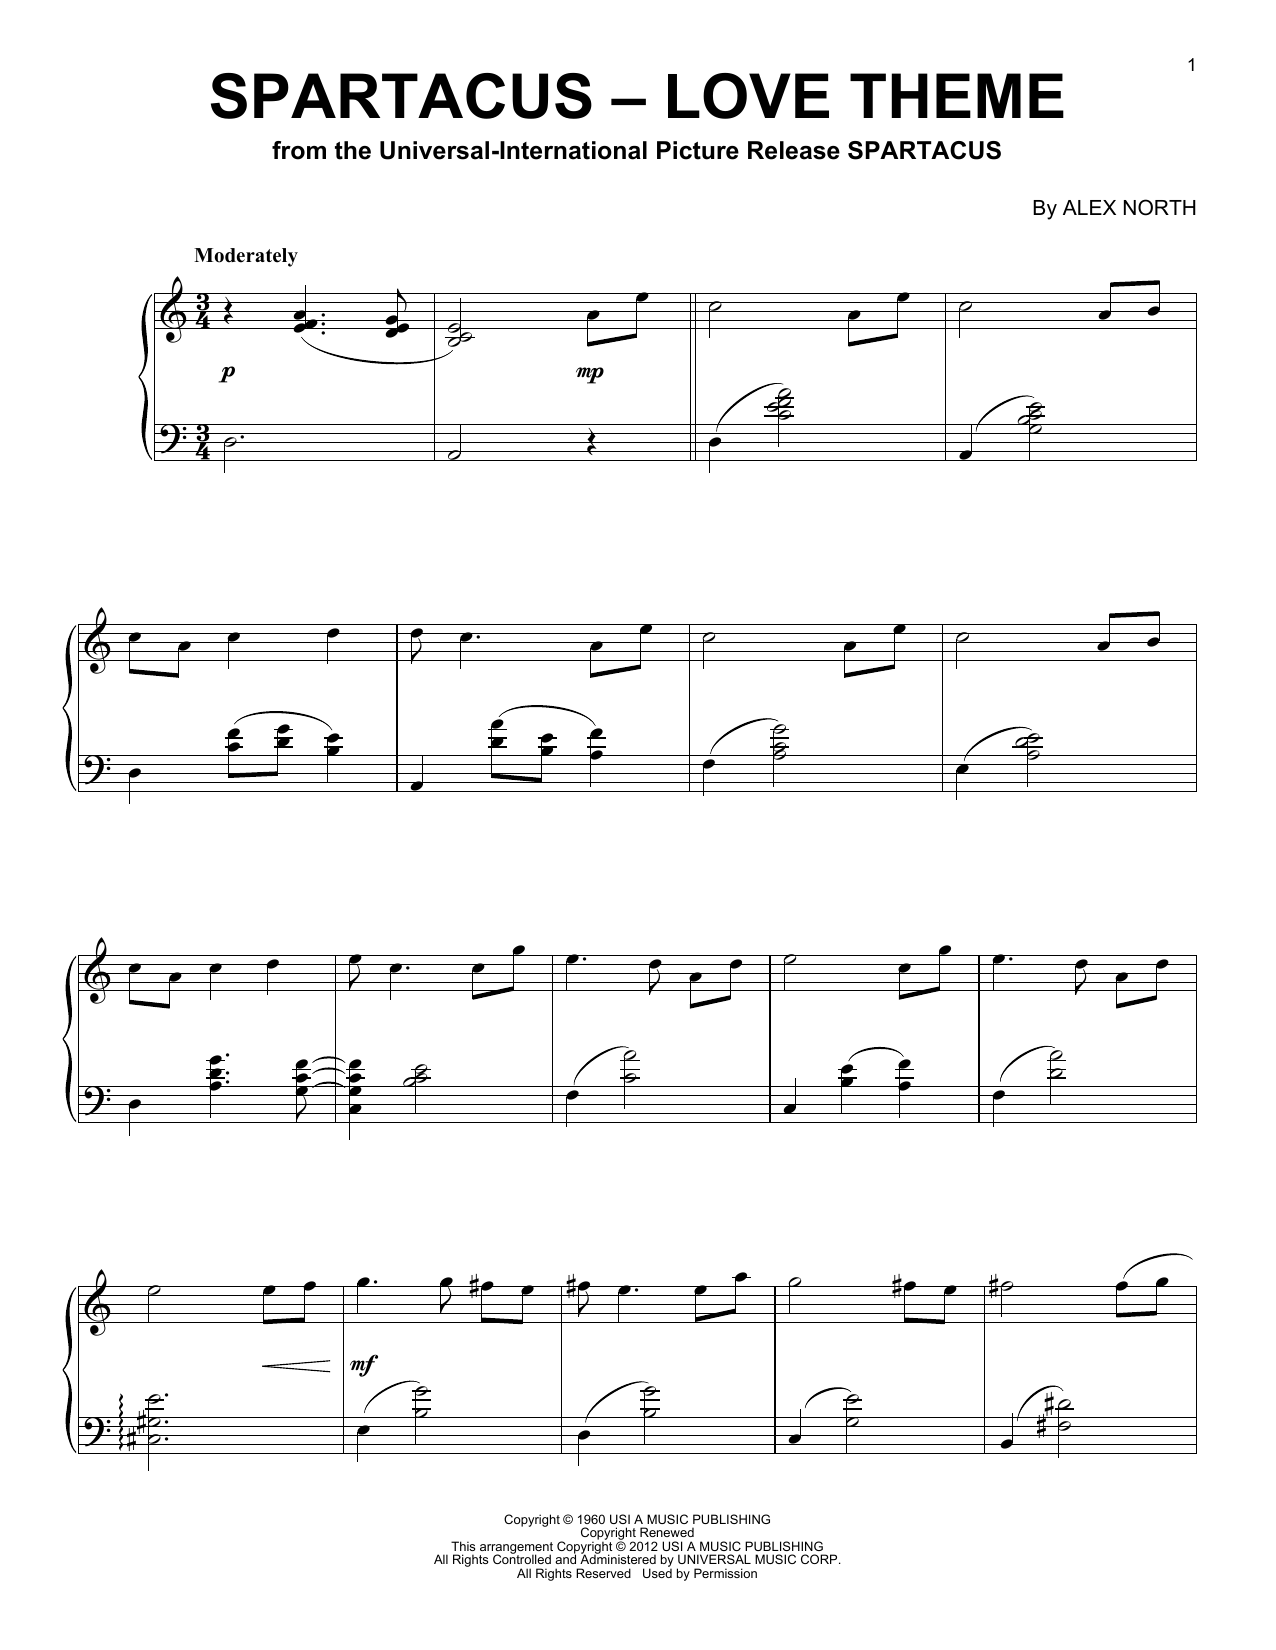 Alex North Spartacus - Love Theme sheet music notes and chords. Download Printable PDF.